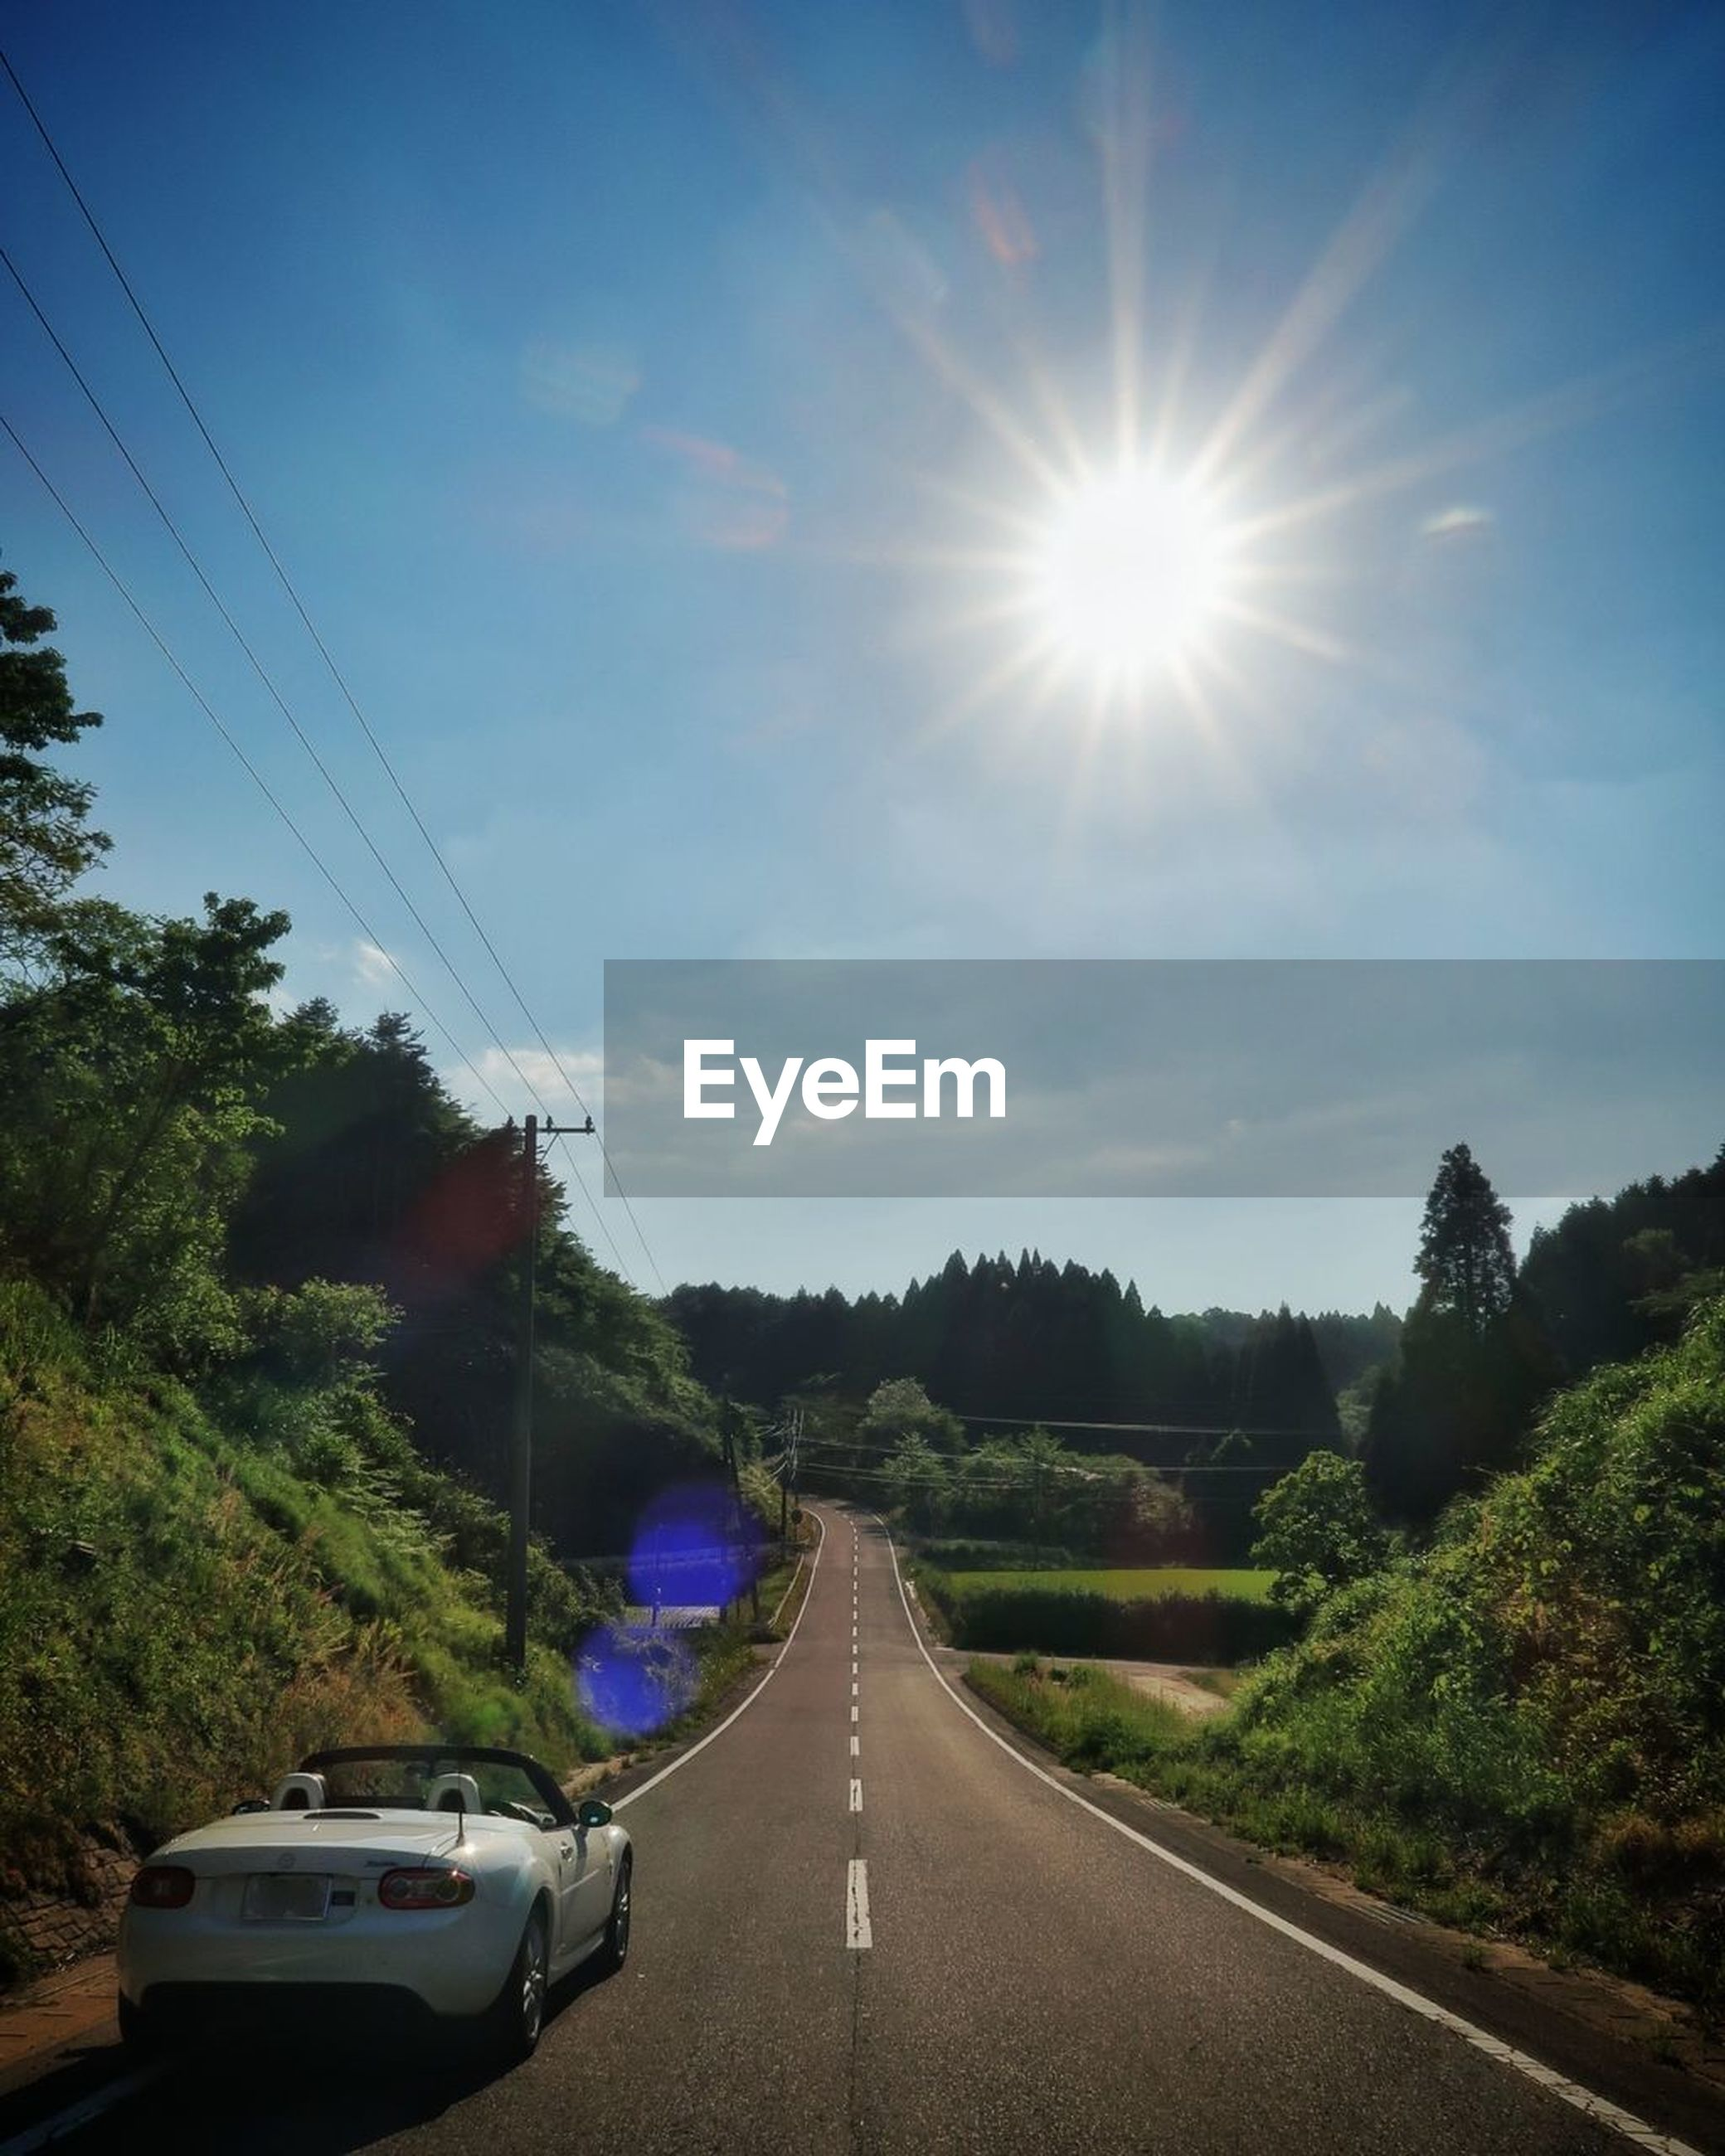 road, transportation, sun, tree, sky, lens flare, the way forward, sunlight, car, outdoors, land vehicle, no people, day, nature, landscape